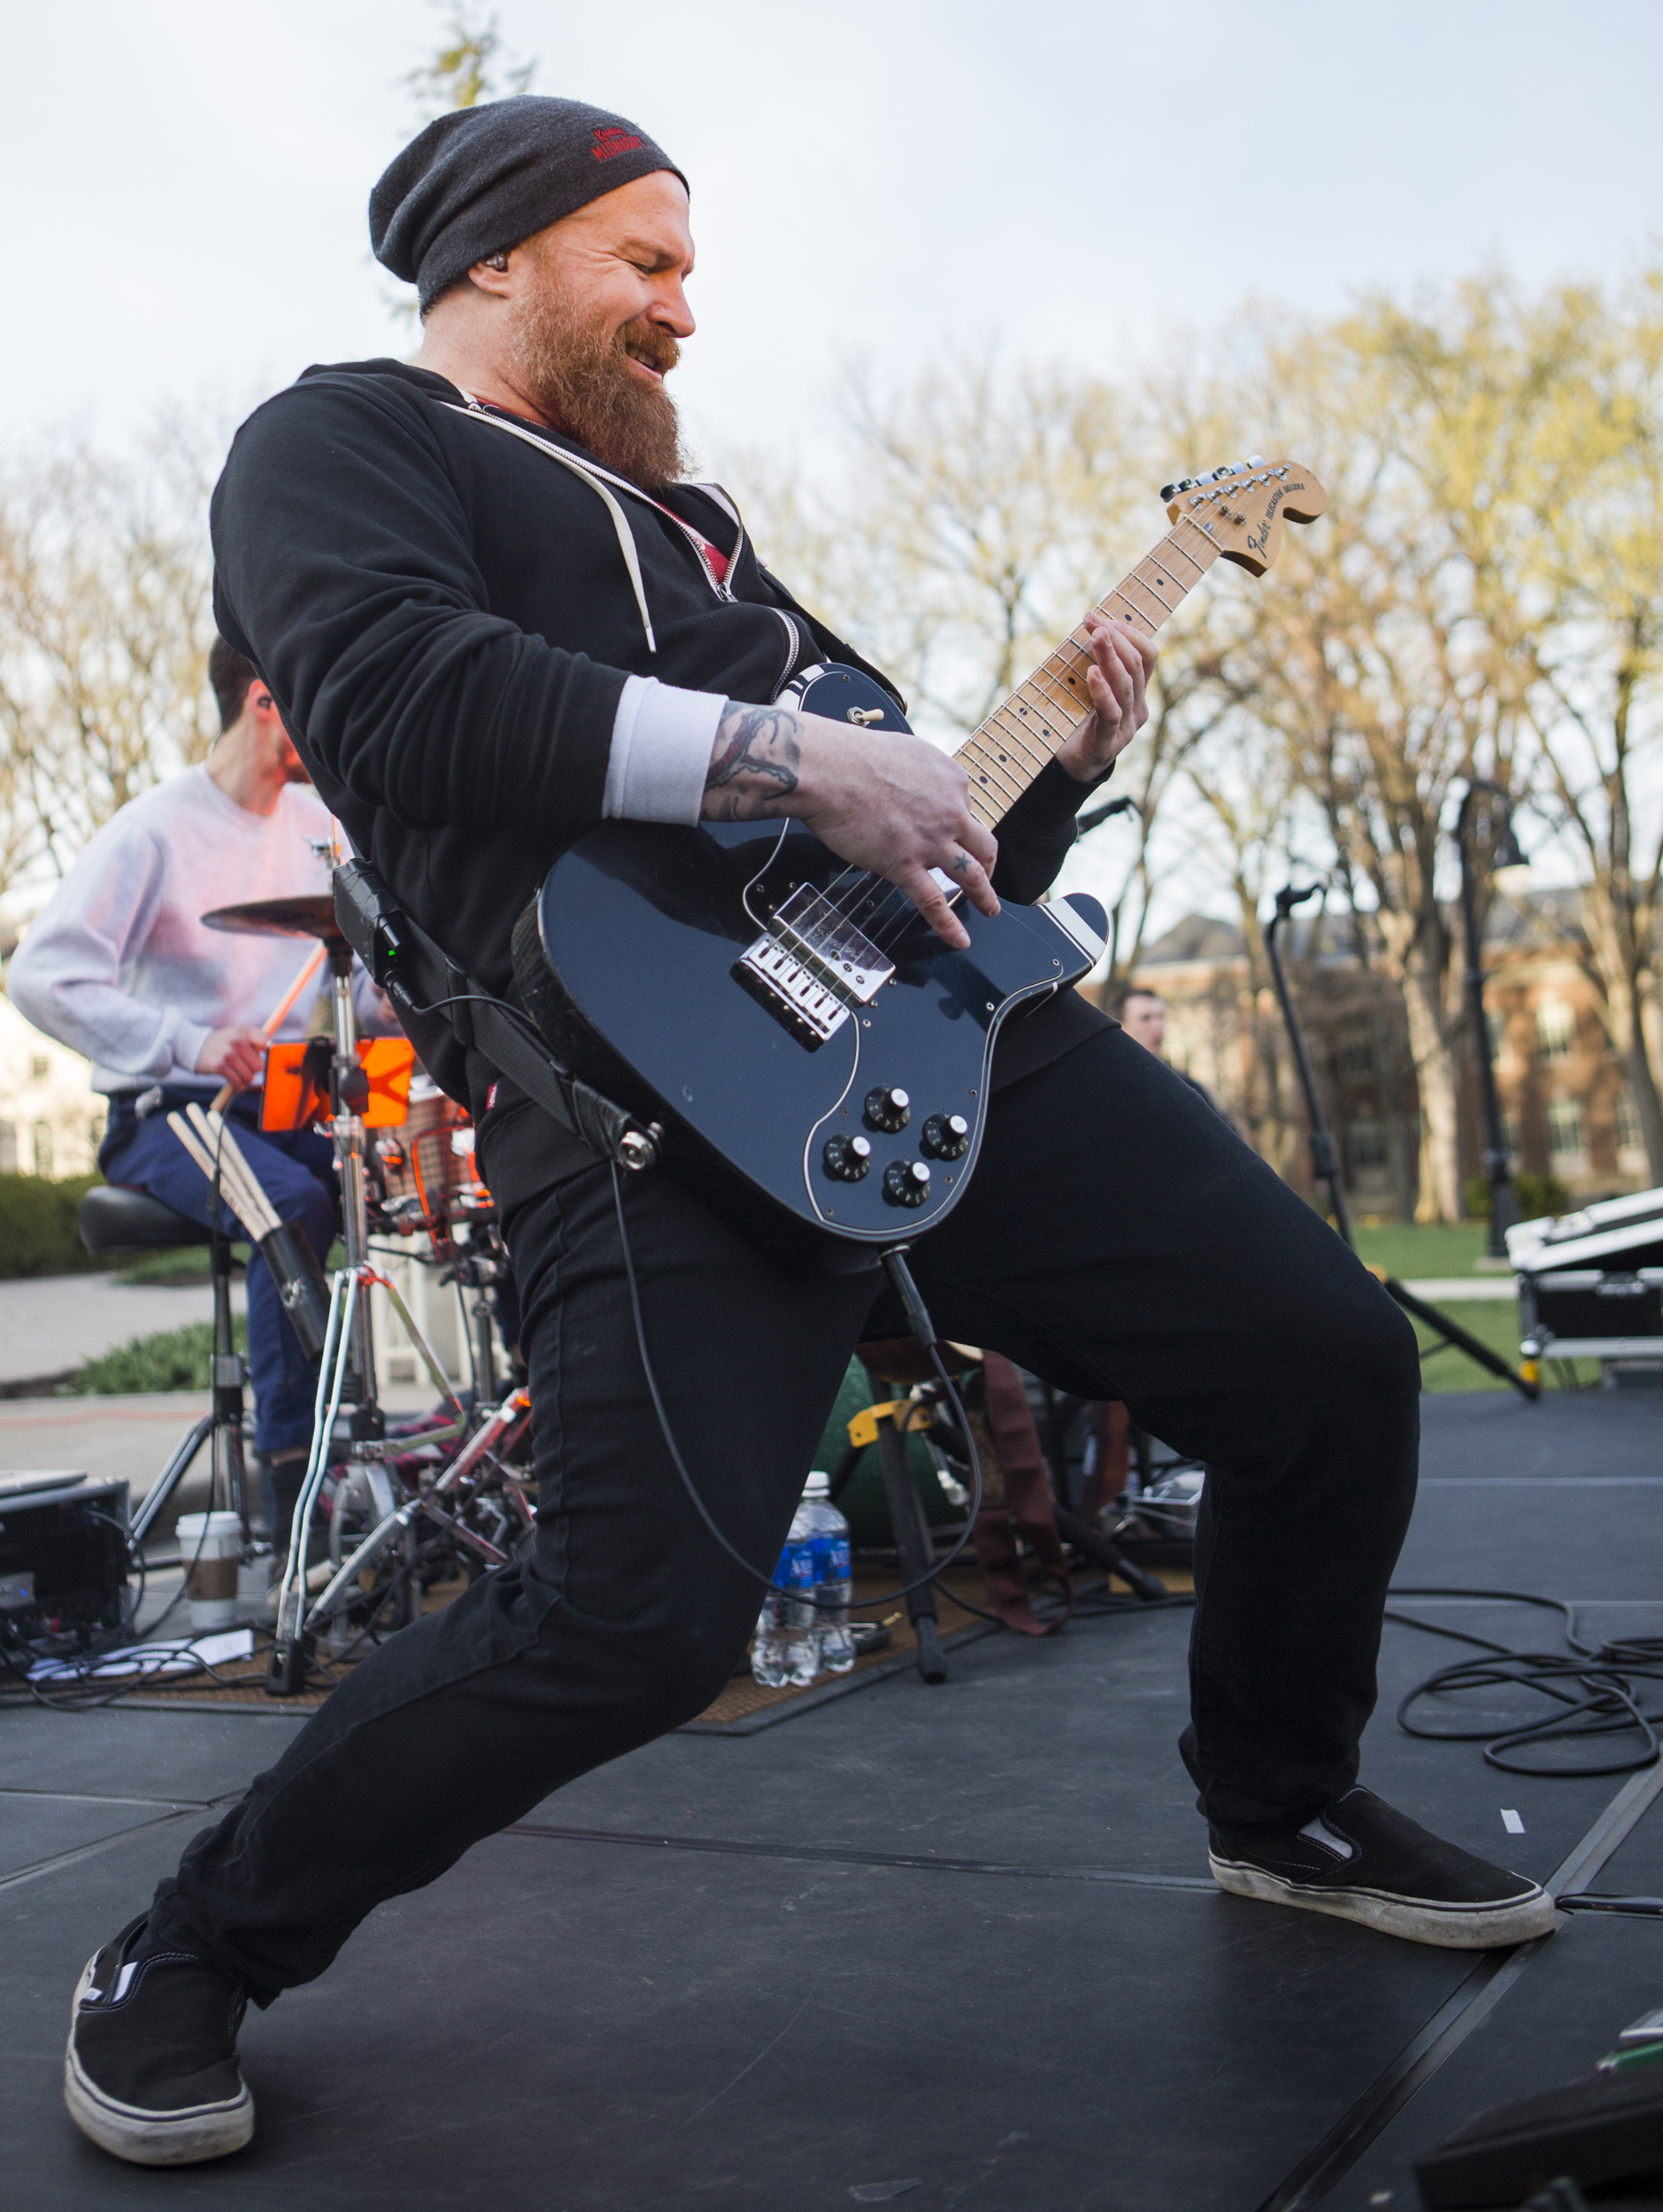 Guitarist Mike Lee performs with State College local band My Hero Zero on the lawn of Old Main as part of PSiheartU week on Wednesday, April 13, 2016.